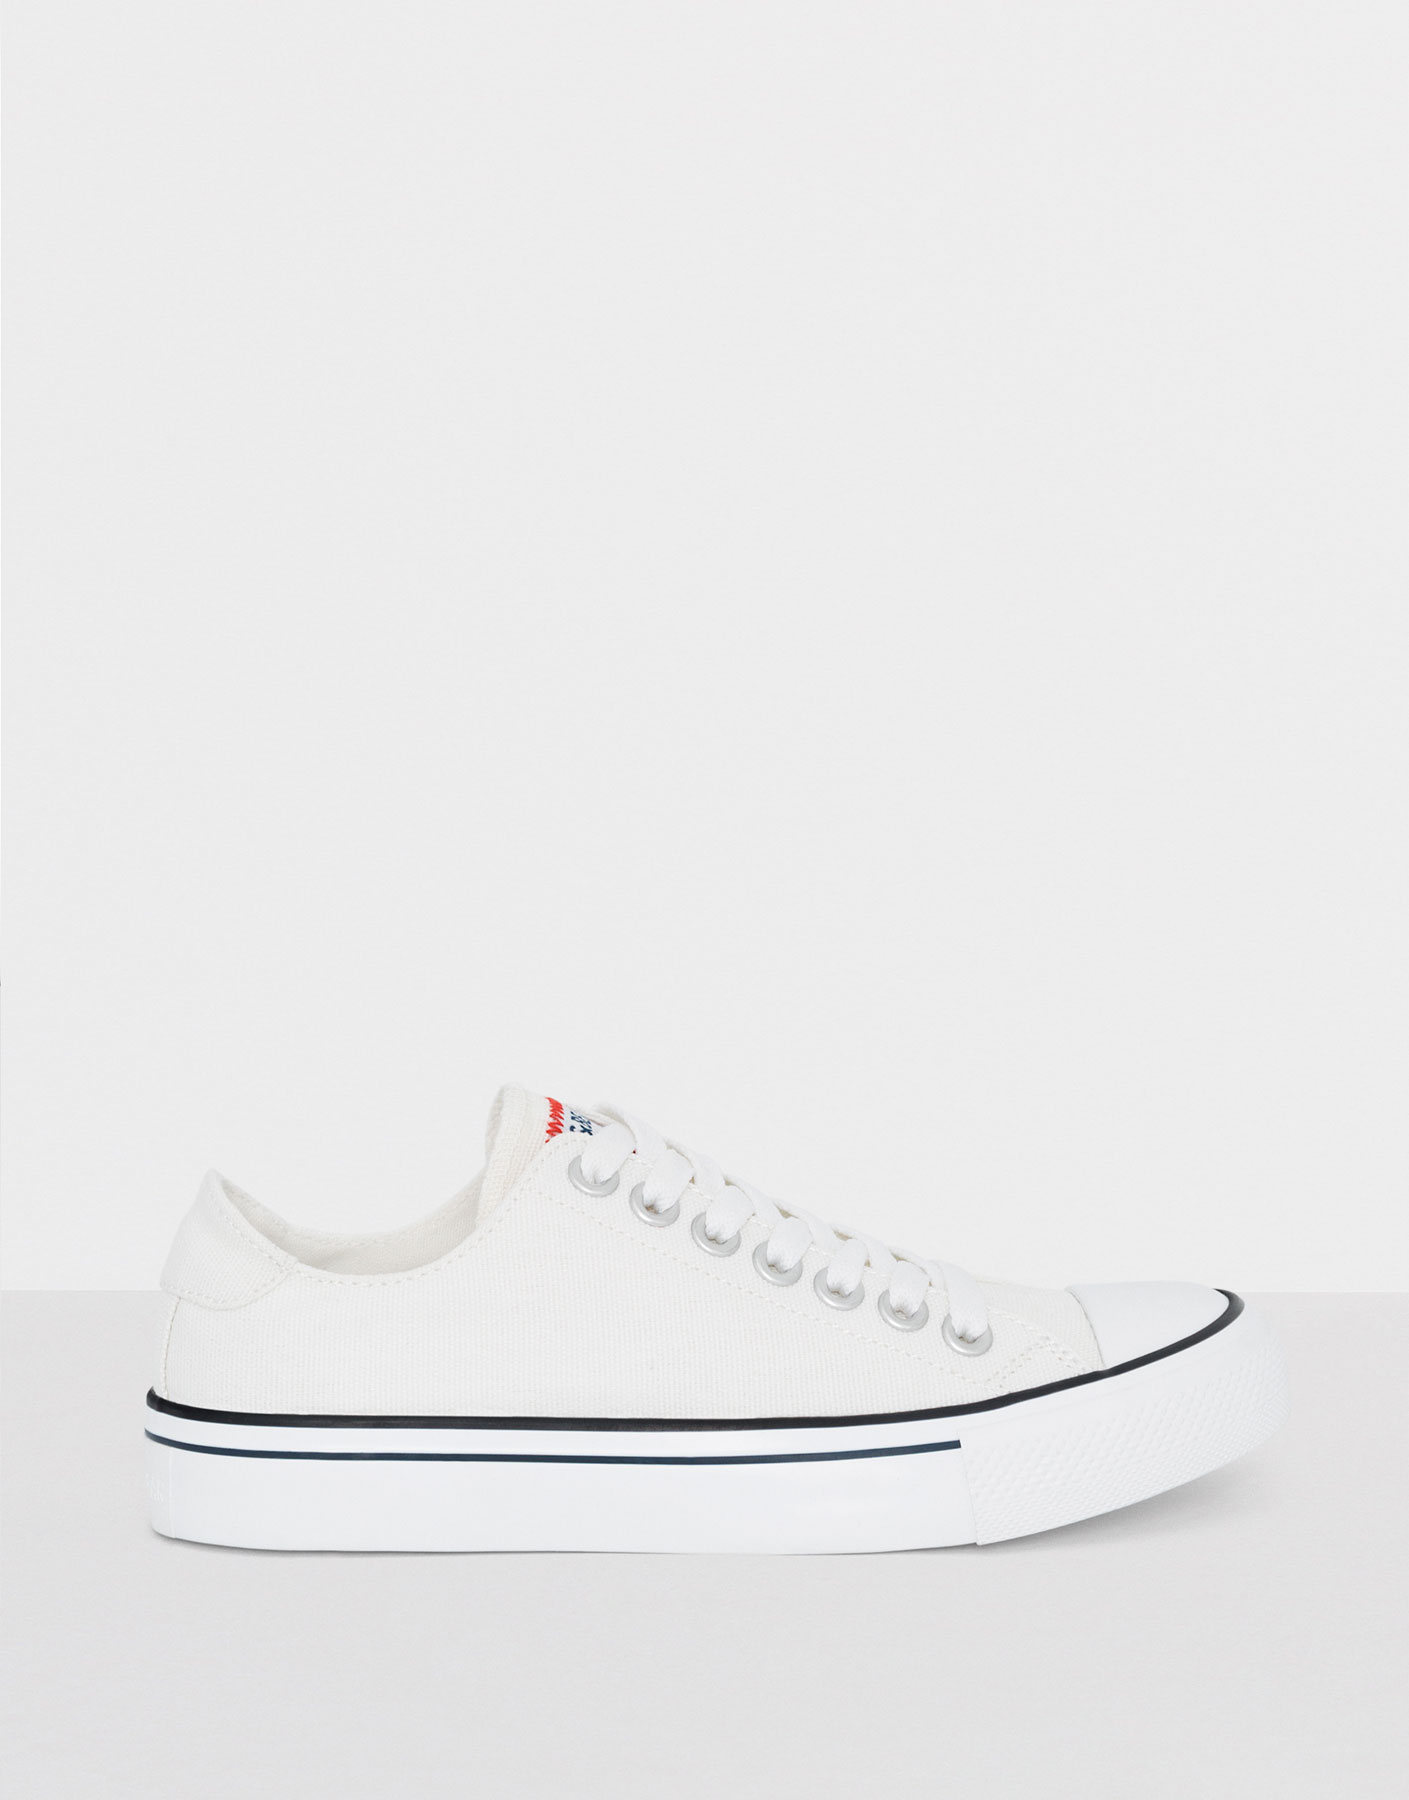 Plimsolls with white toe cap